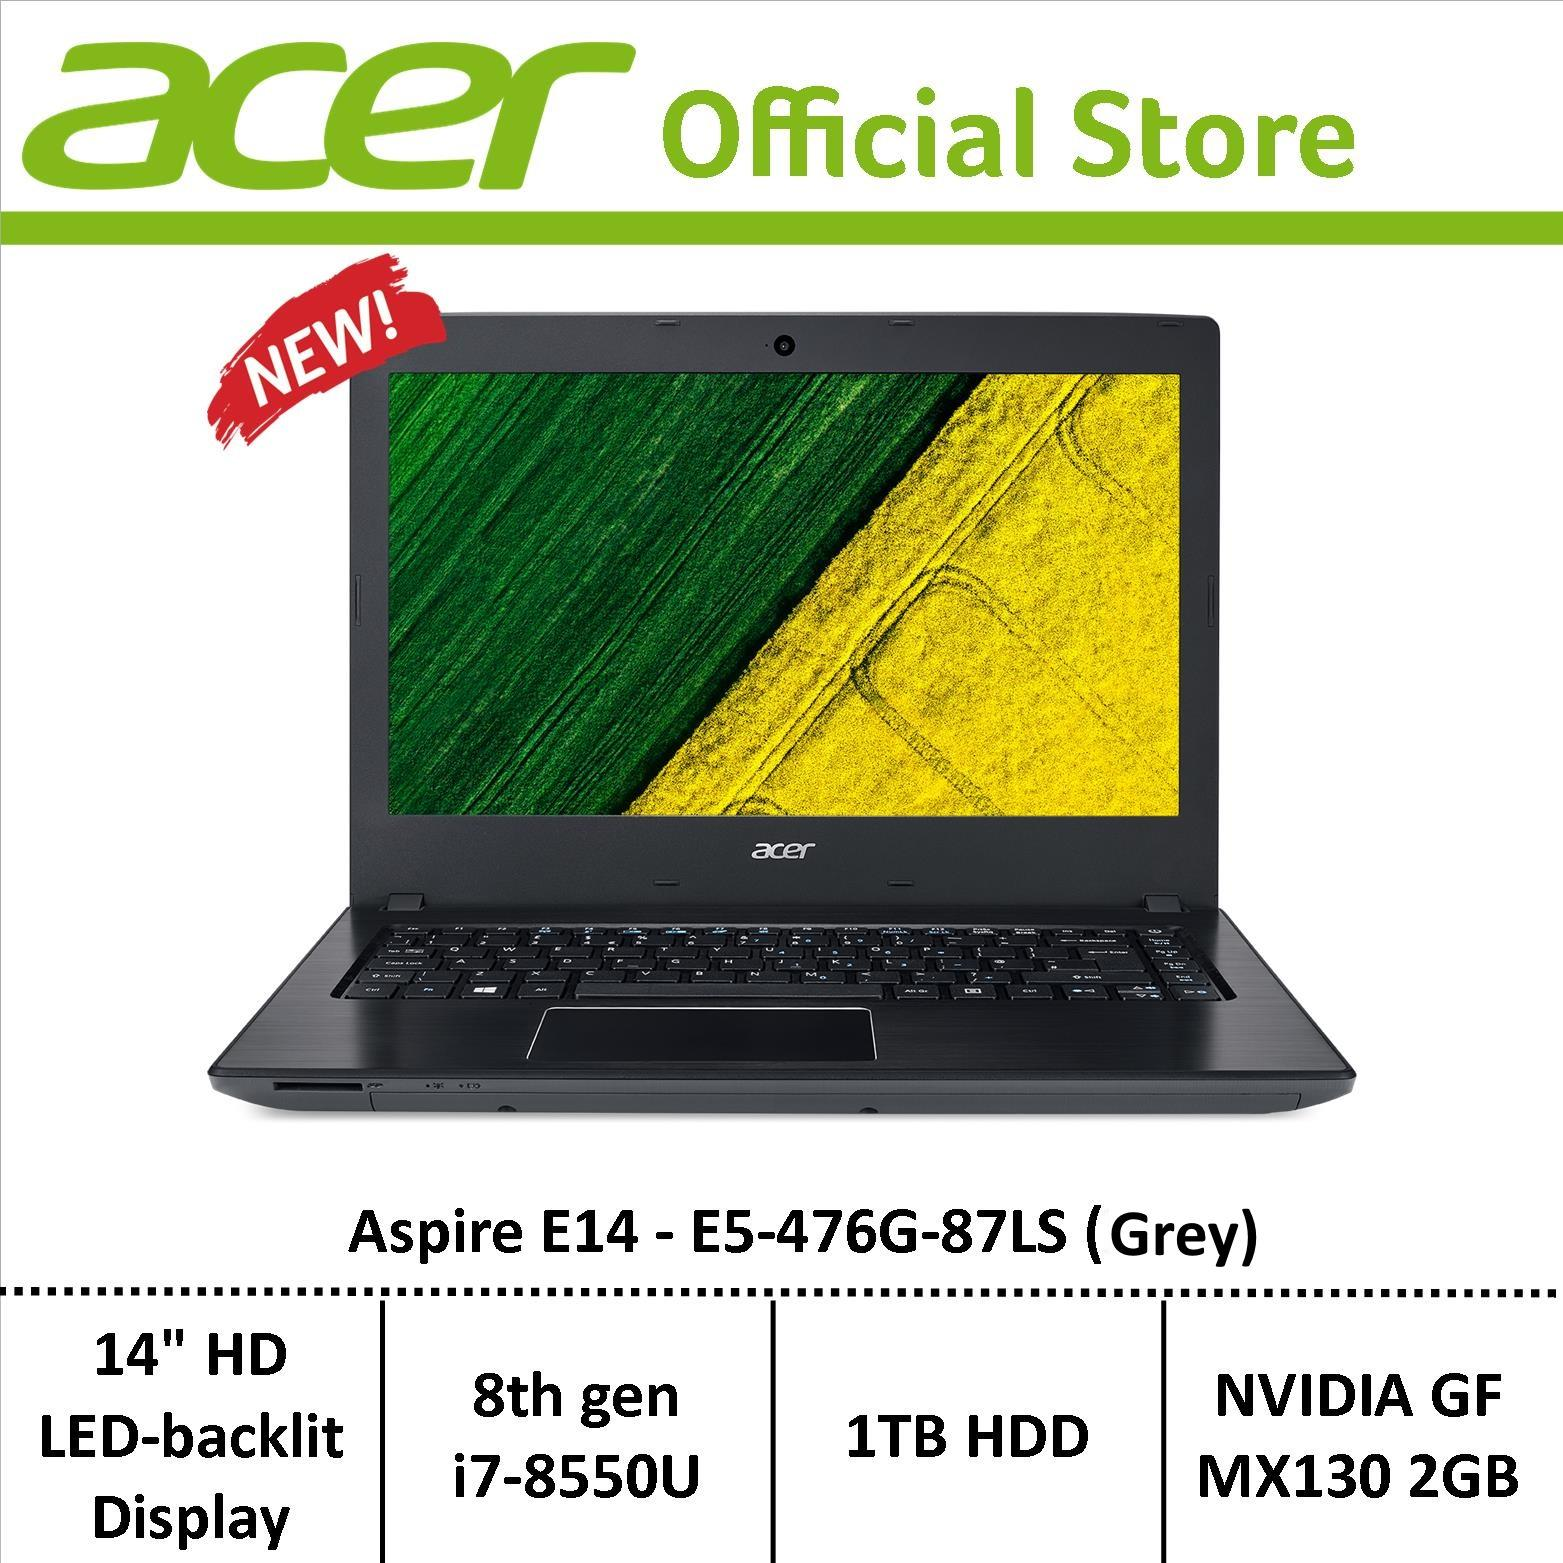 Acer Aspire E5-476G-87LS (Grey) Laptop with Graphics Card